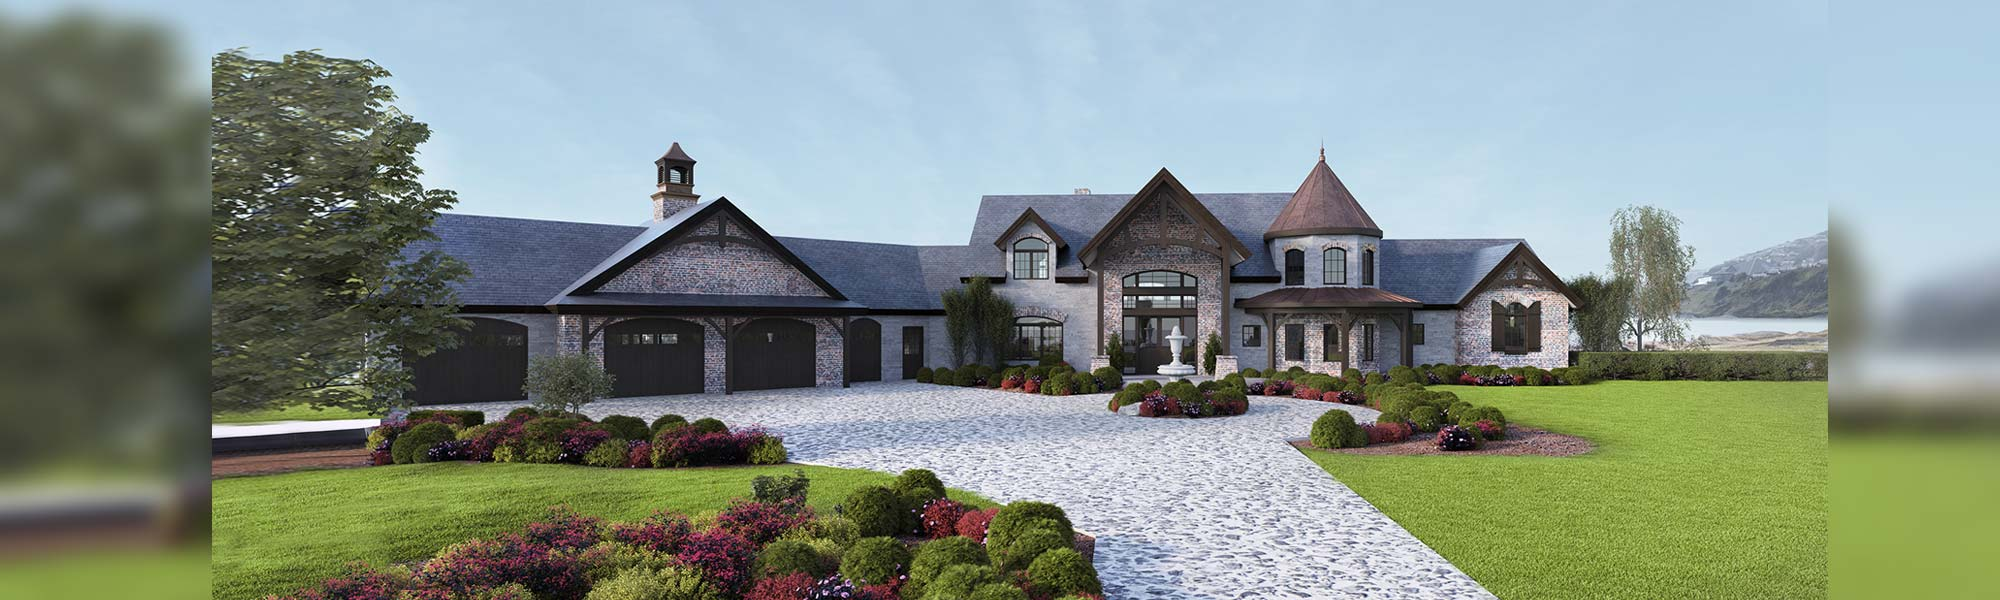 Aberdeen french country design